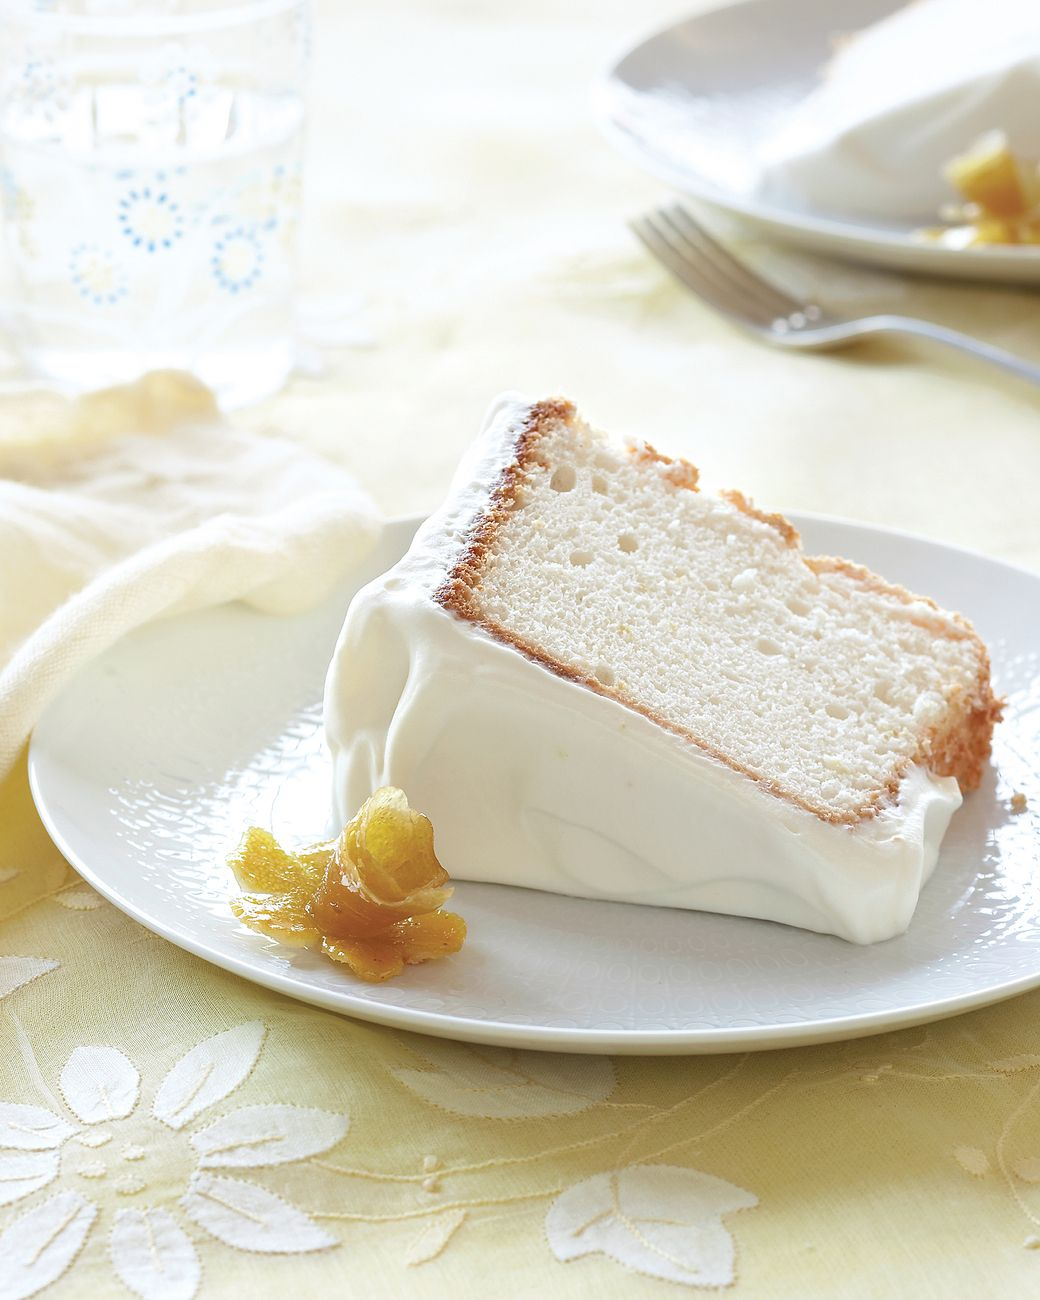 Lemony Angel Food Cake Recipe Heavenly angels Angel food cakes